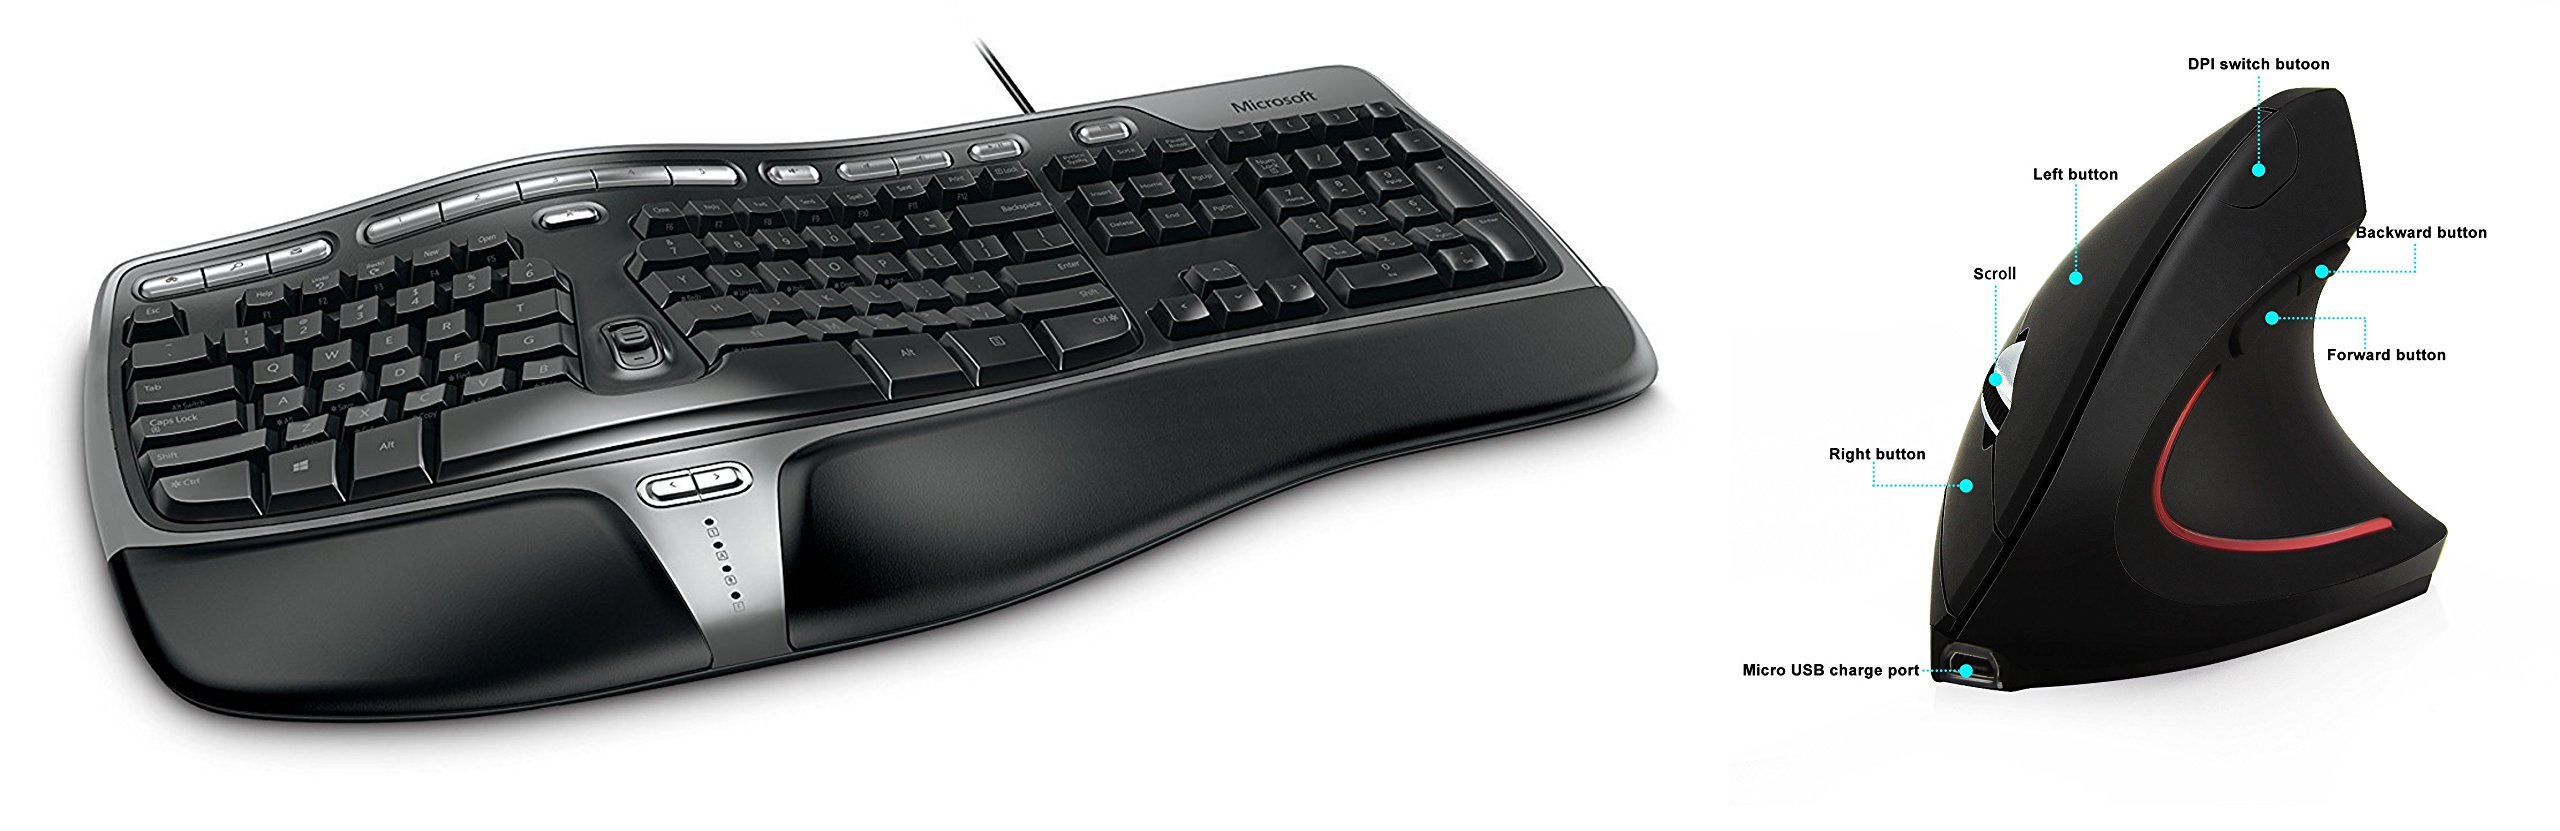 Microsoft Natural Ergonomic Keyboard 4000 for Business - Wired + Ergy - The Ergonomical Mouse - Wireless Optical Rechargable Battery Vertical Mouse - 2.4 Ghz, 6 Buttons - Adjustable DPI